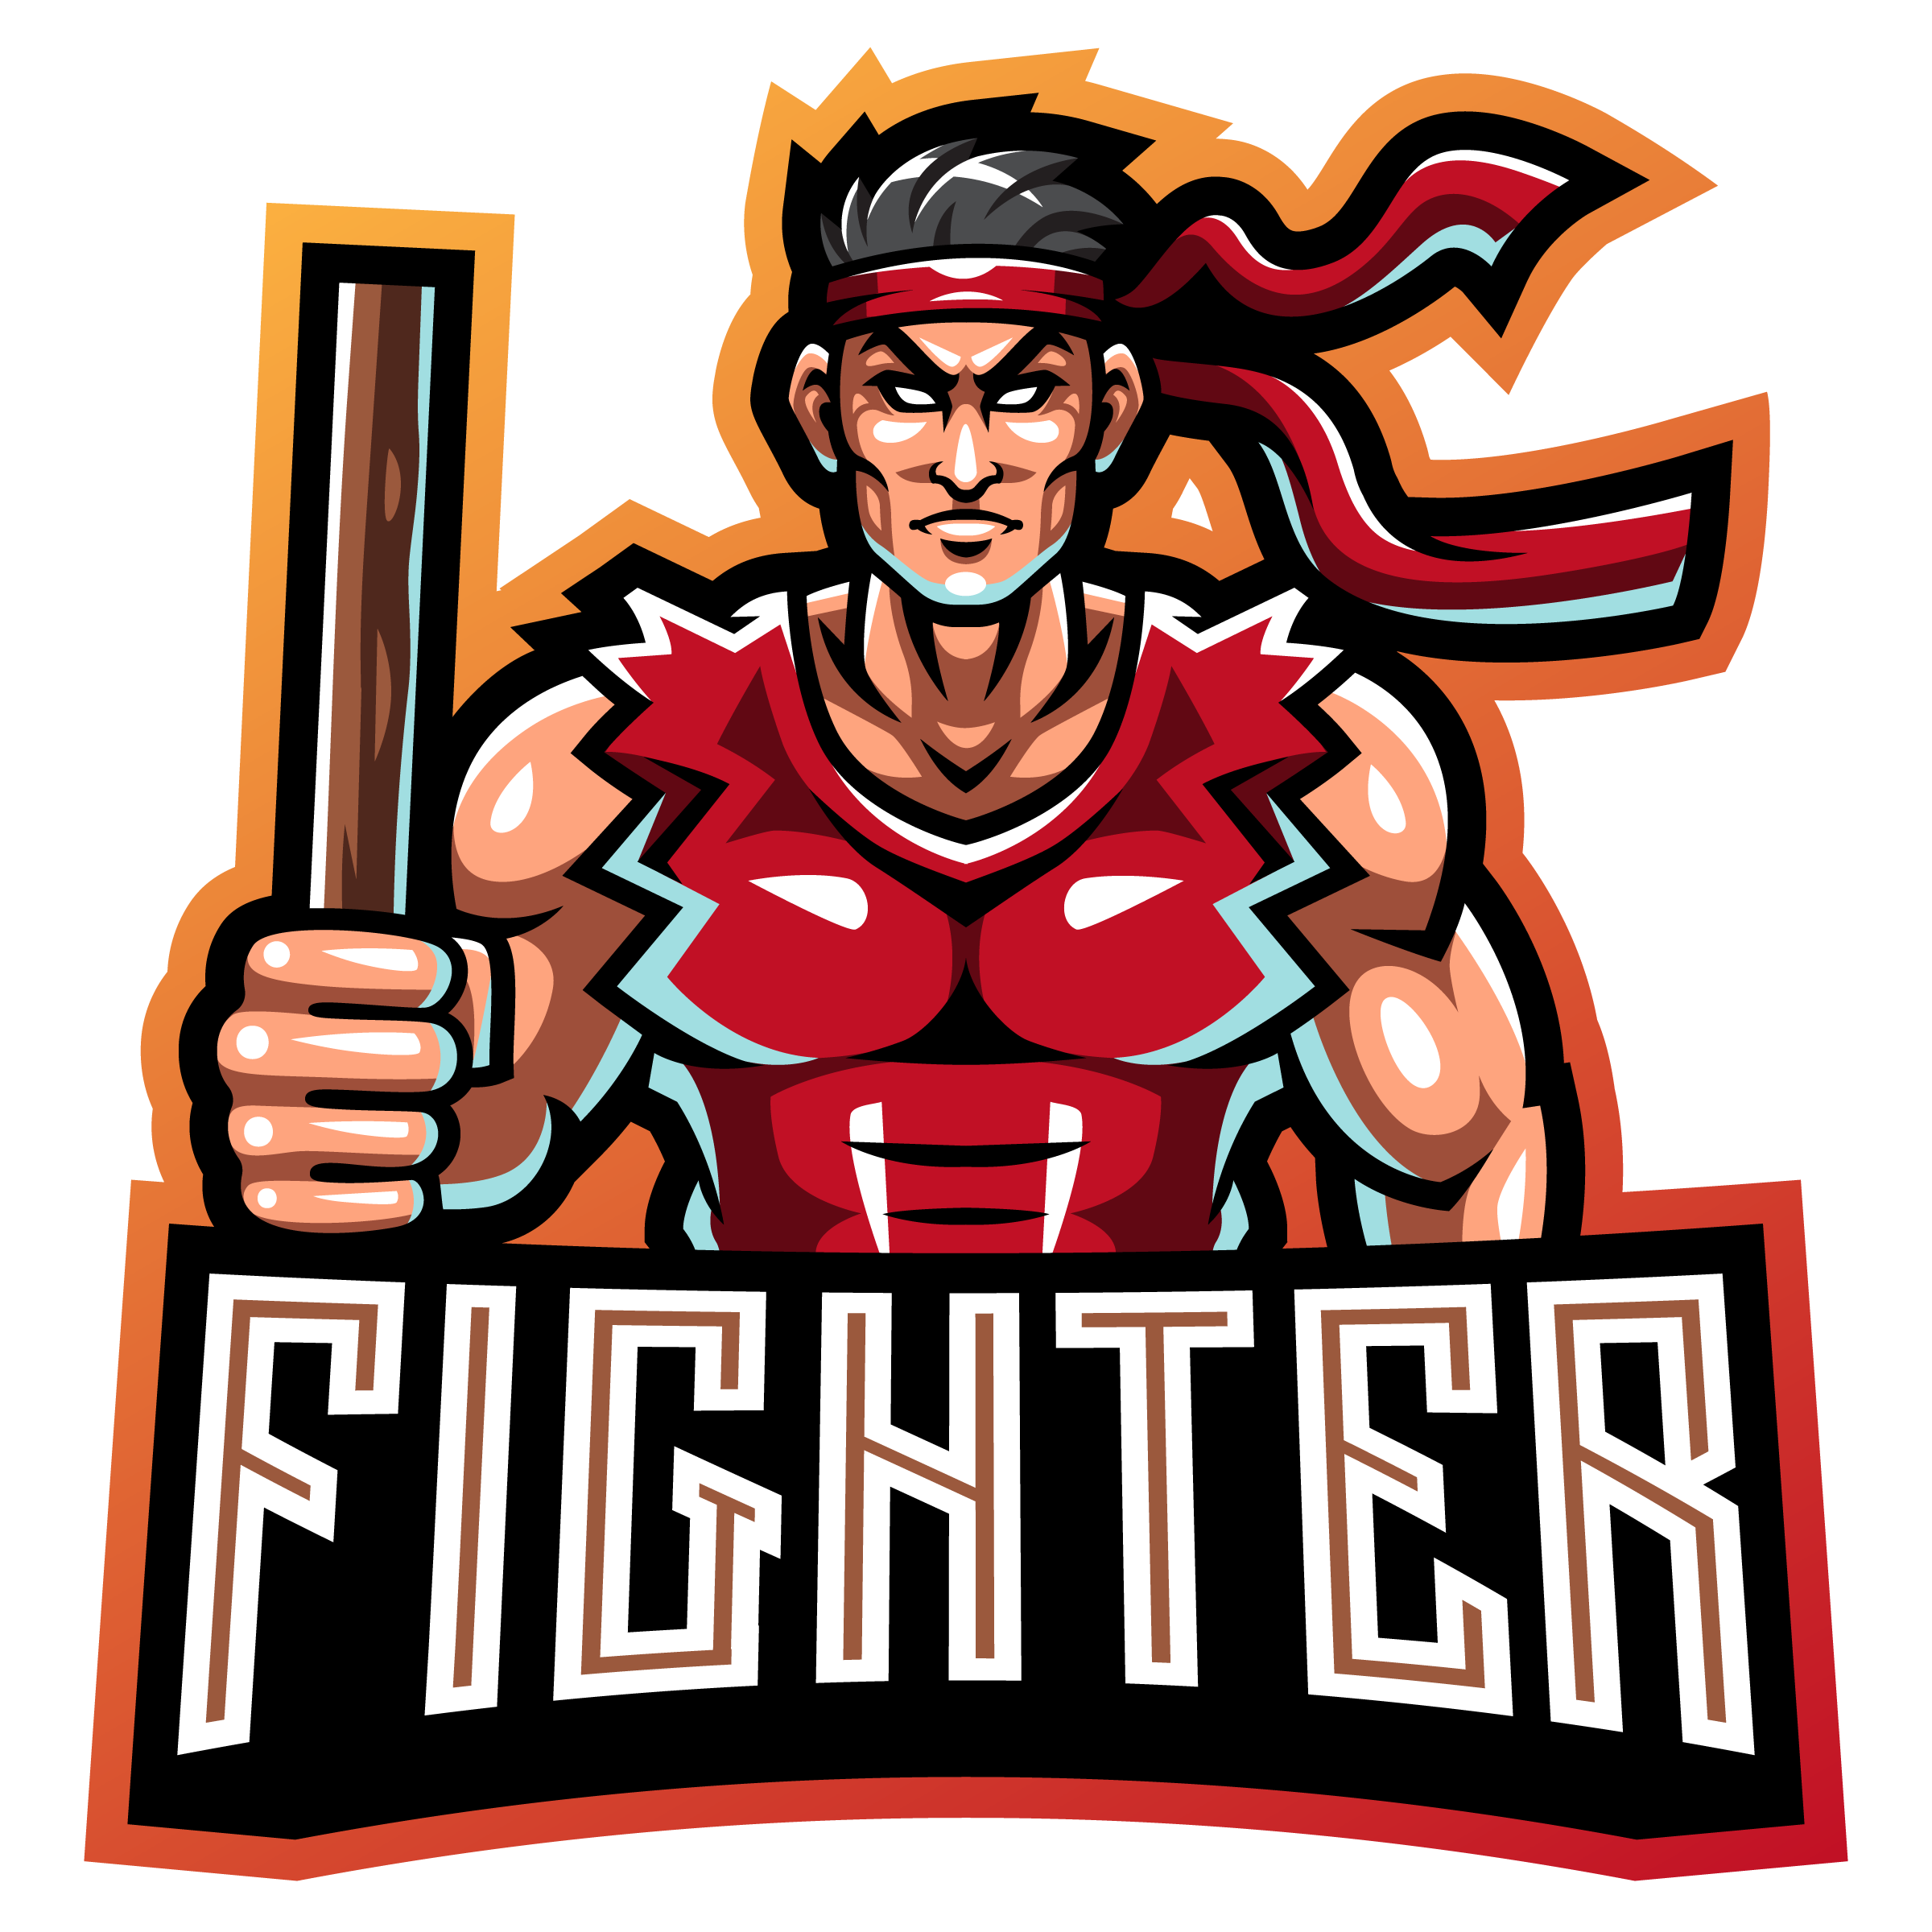 Free-Street-Fighter-Mascot-Logo-Template-PNG-Transparent